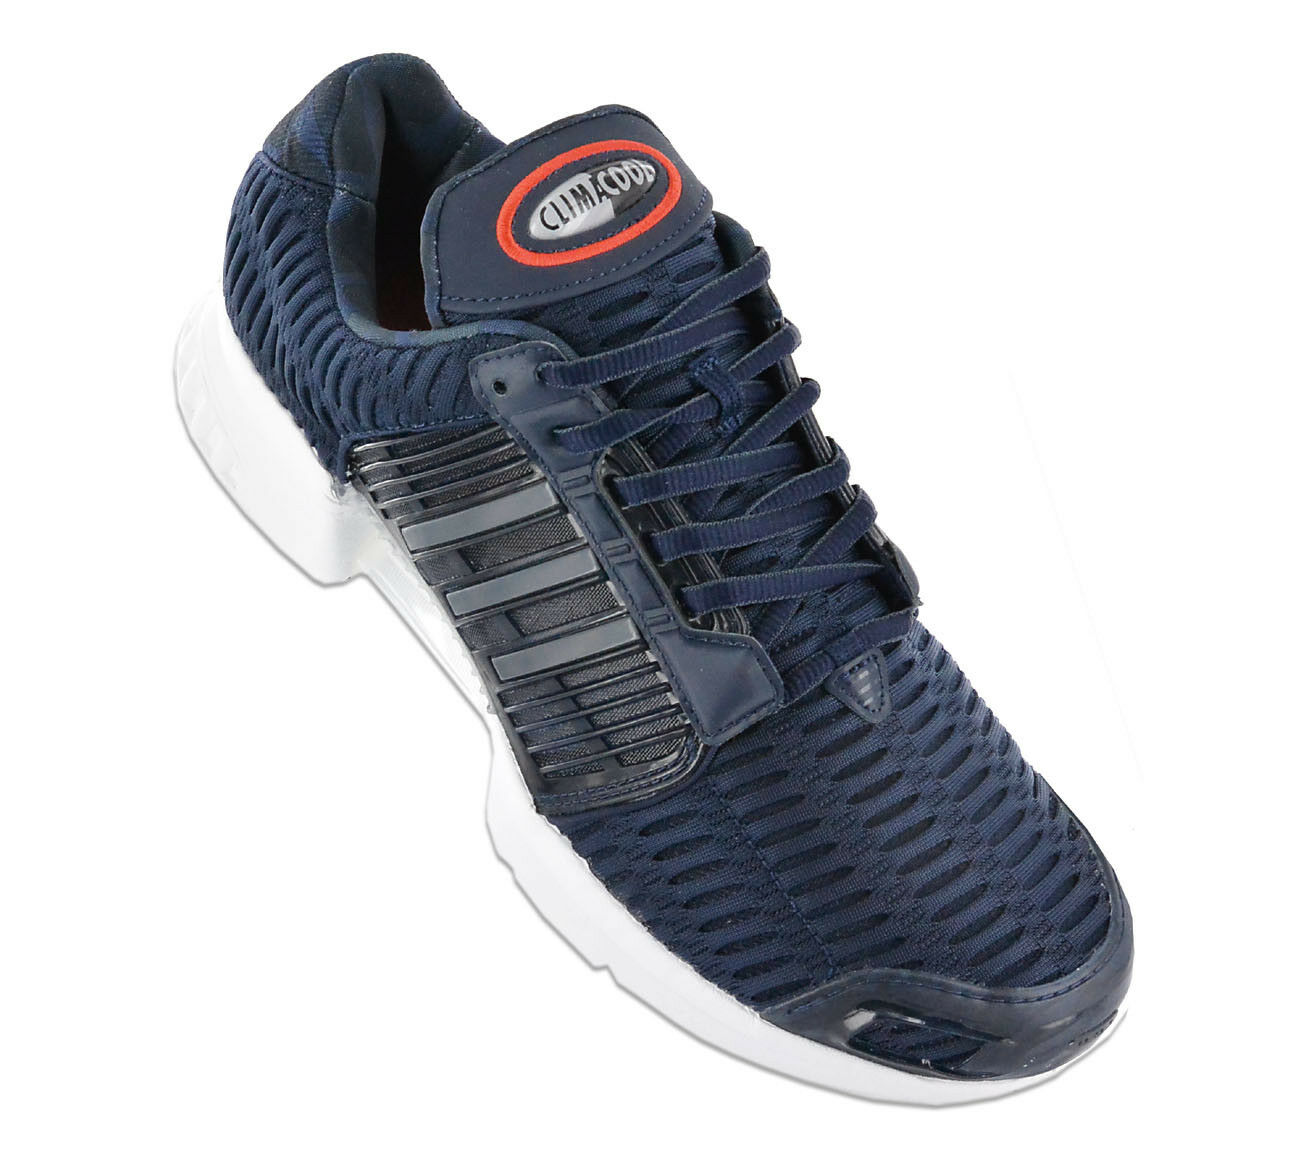 NEW adidas Climacool 1 BA7176 Men''s shoes Trainers Sneakers SALE